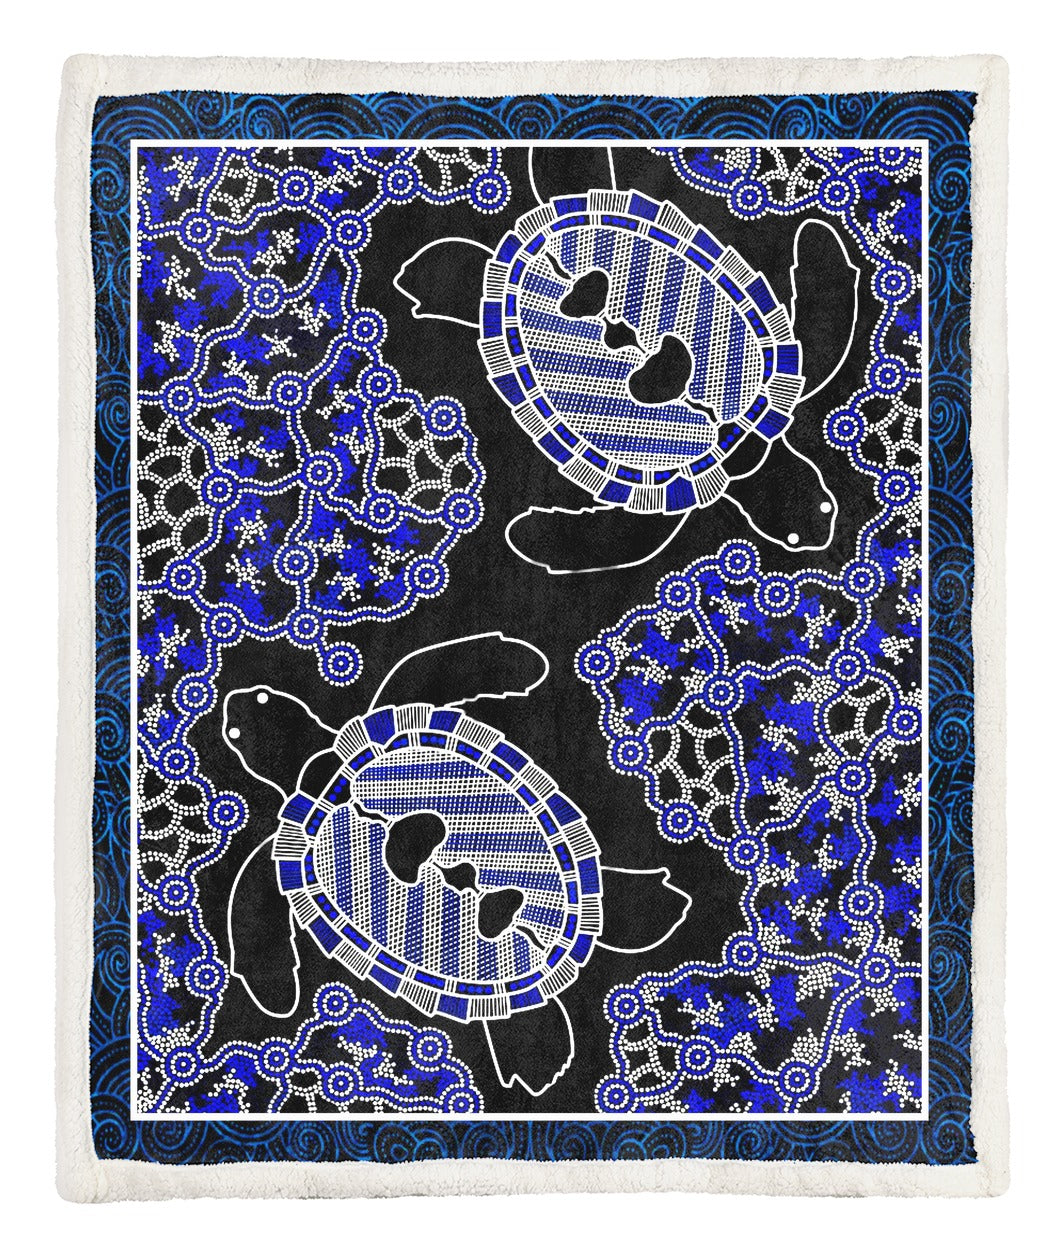 turtle-throw-blanket-tabccc19103482